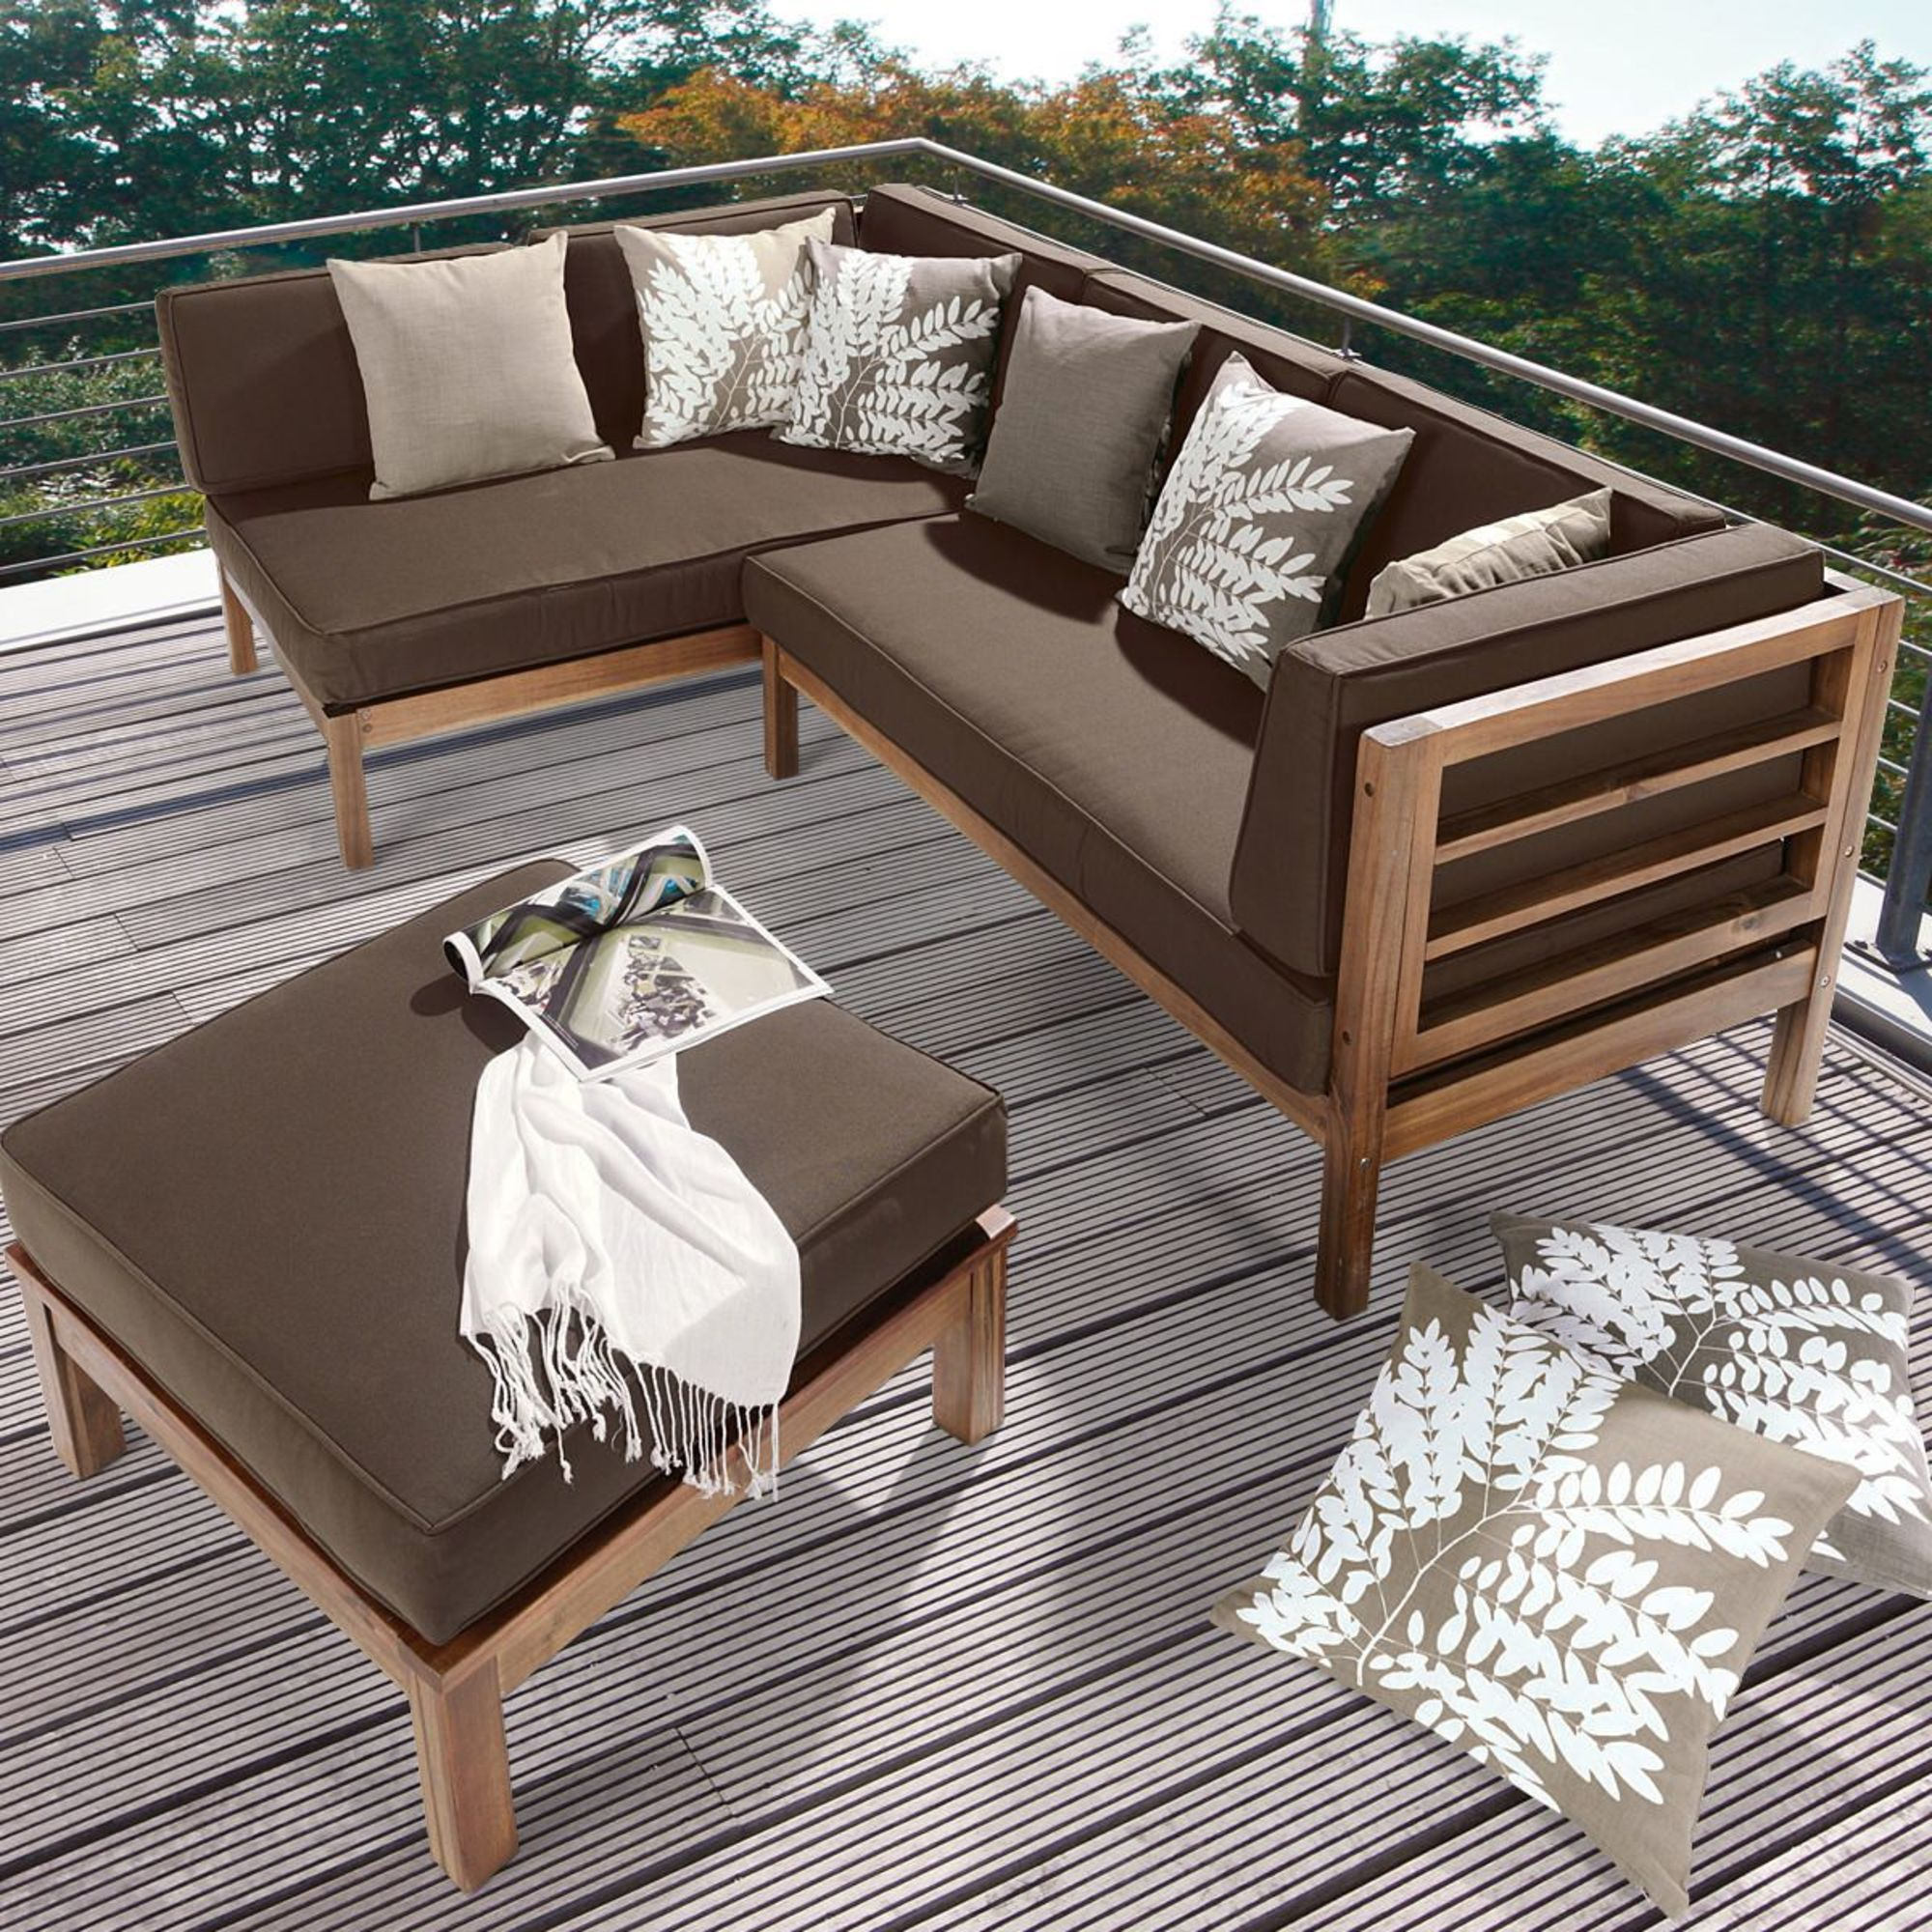 holz ecklounge 3 tlg gartenm bel sets gartenm bel. Black Bedroom Furniture Sets. Home Design Ideas